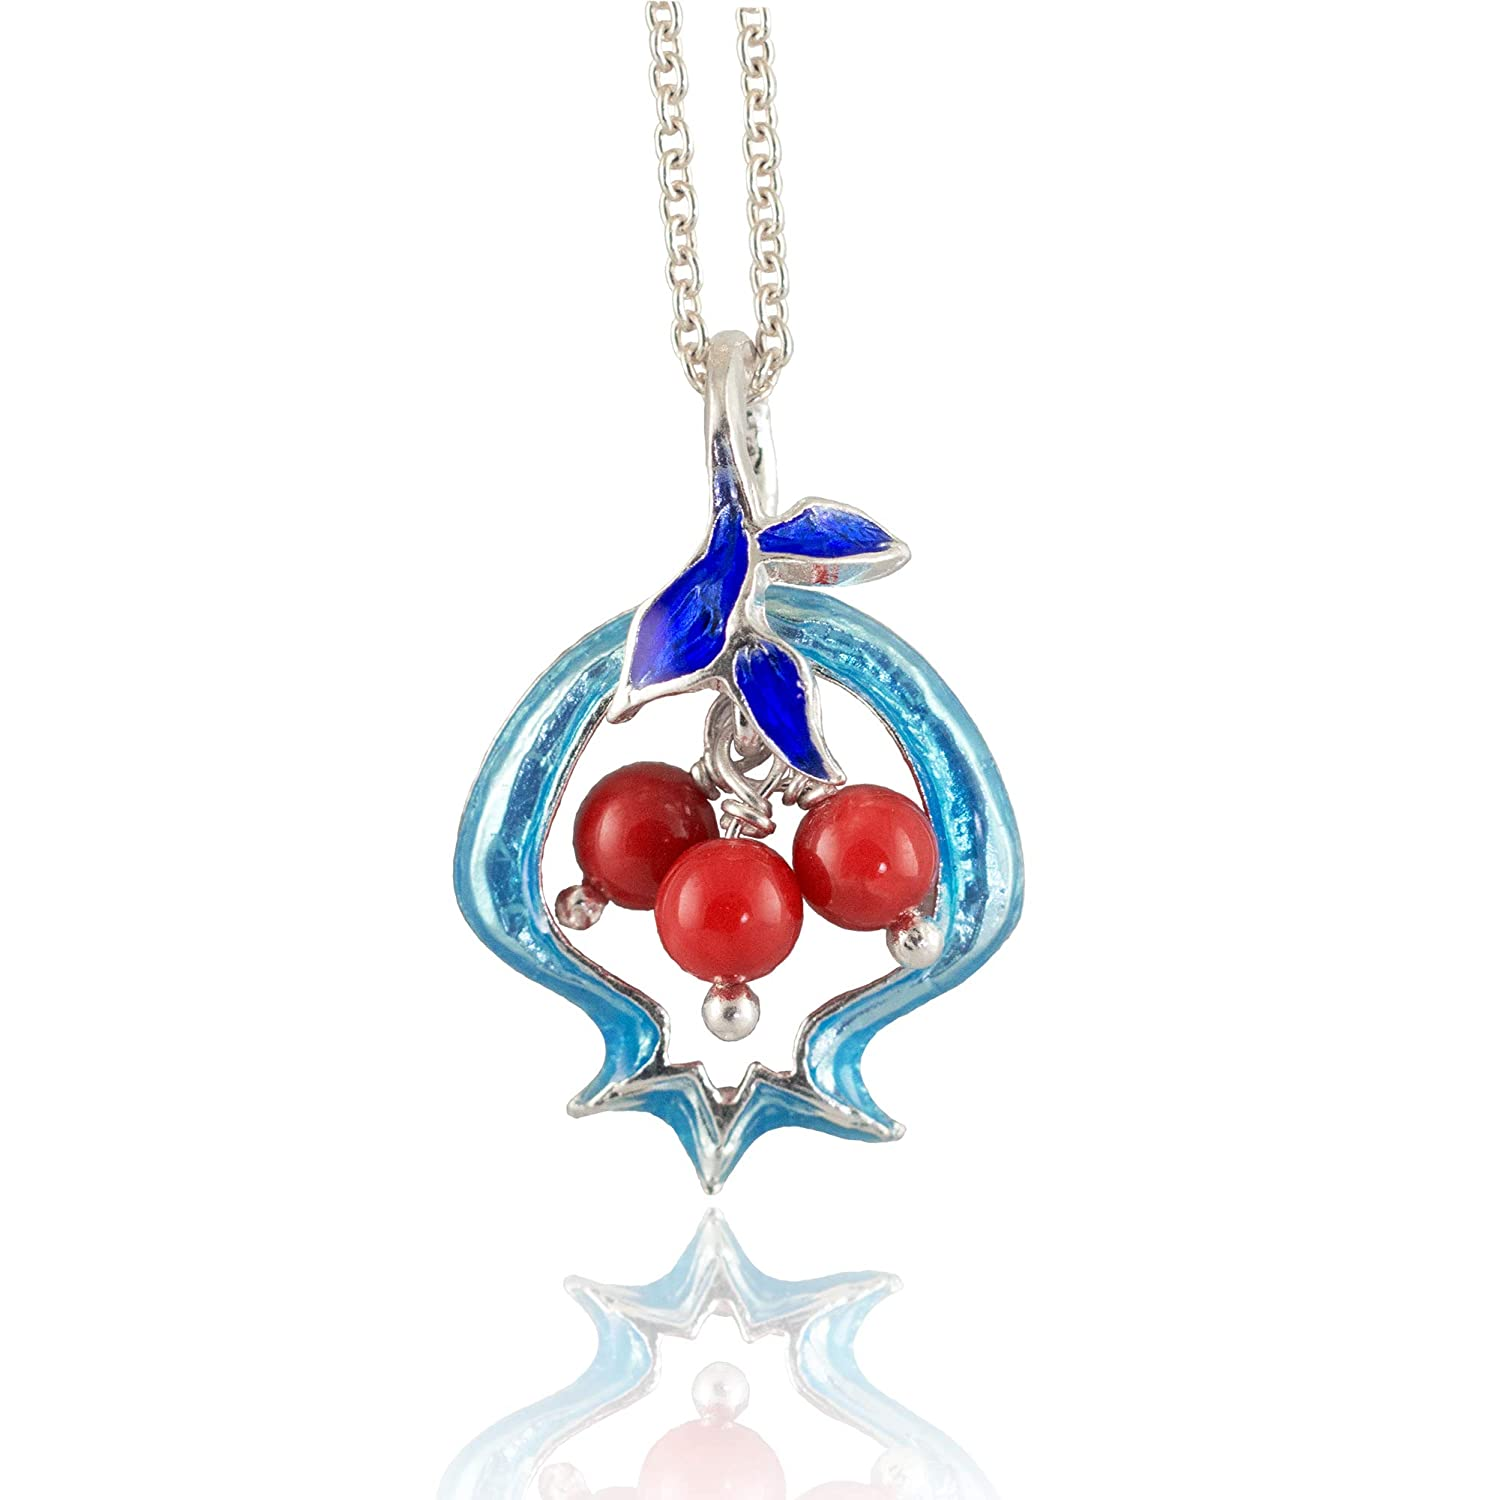 Long necklace with a long silver chain and turquoise and red pendants